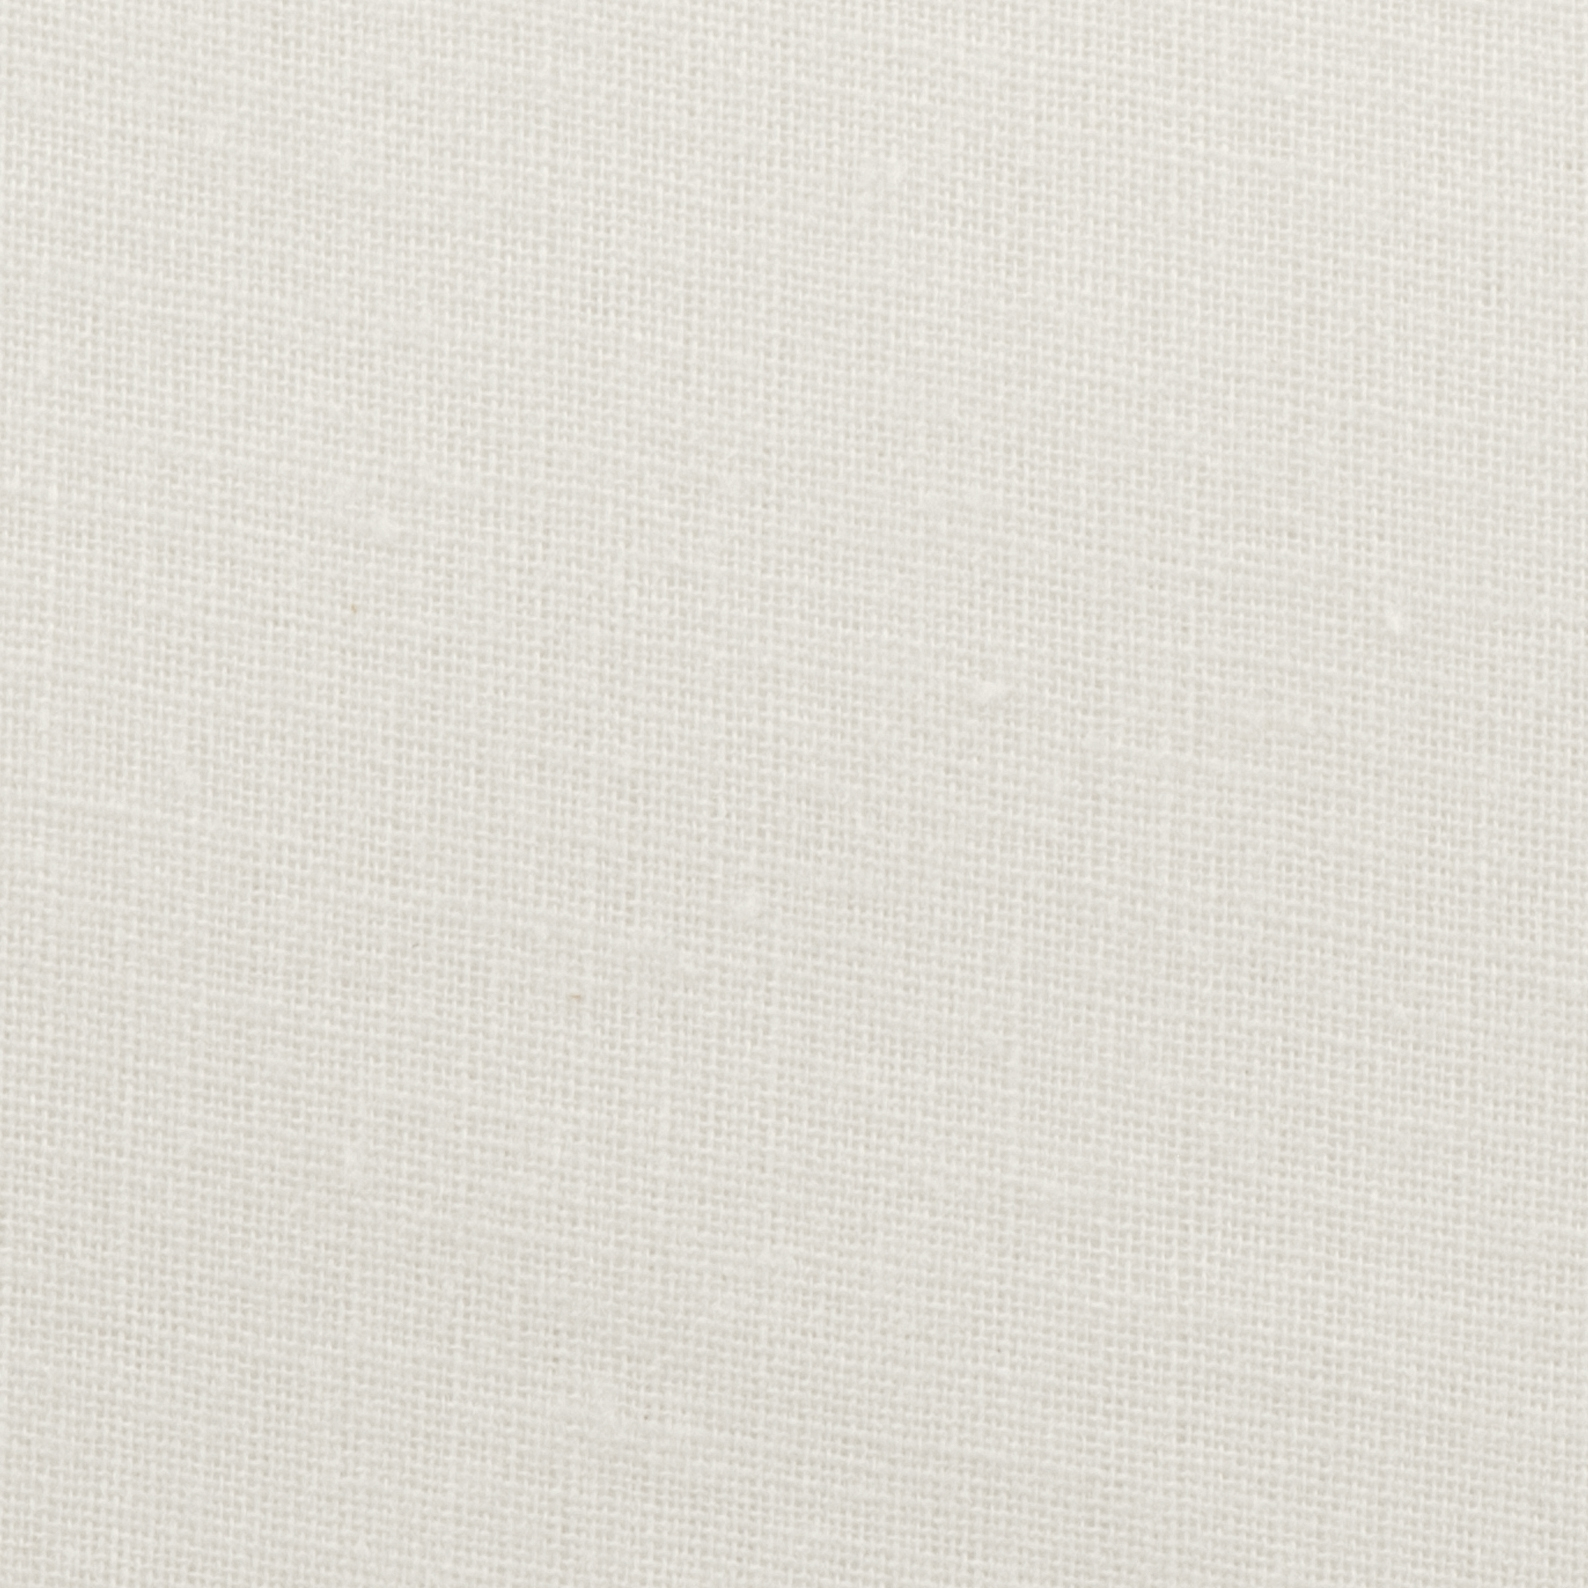 "Muslin 120"" Wide Cotton Unbleached/Natural by the Yard"